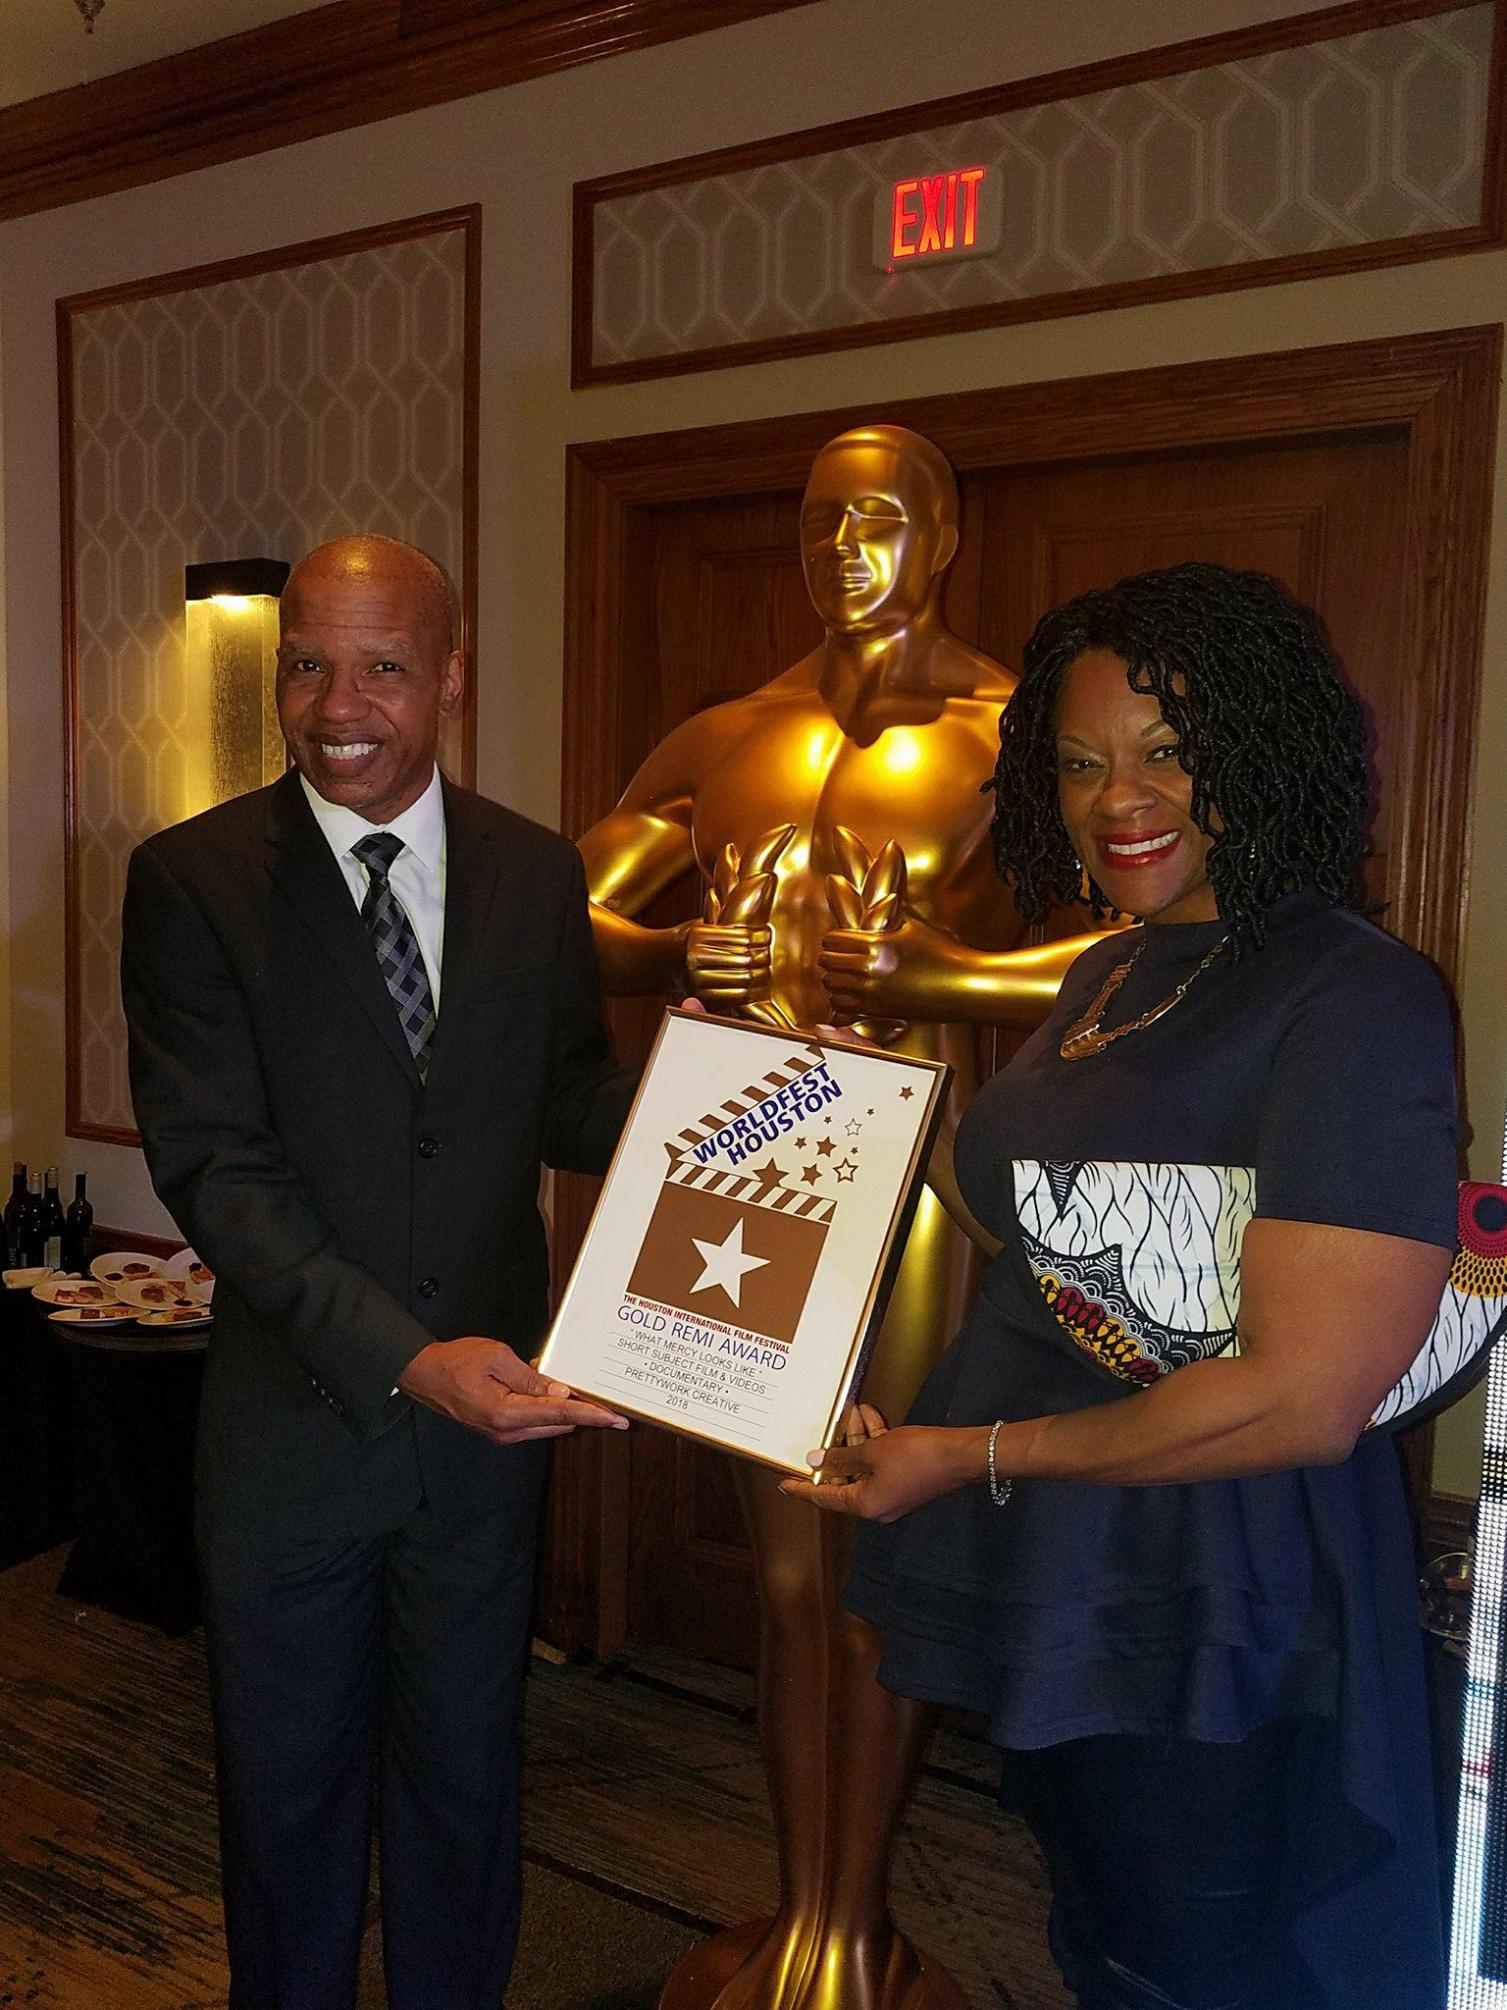 Lisa N. and Elgin Alexander receive a Gold Remi at the WorldFest Film Festival.